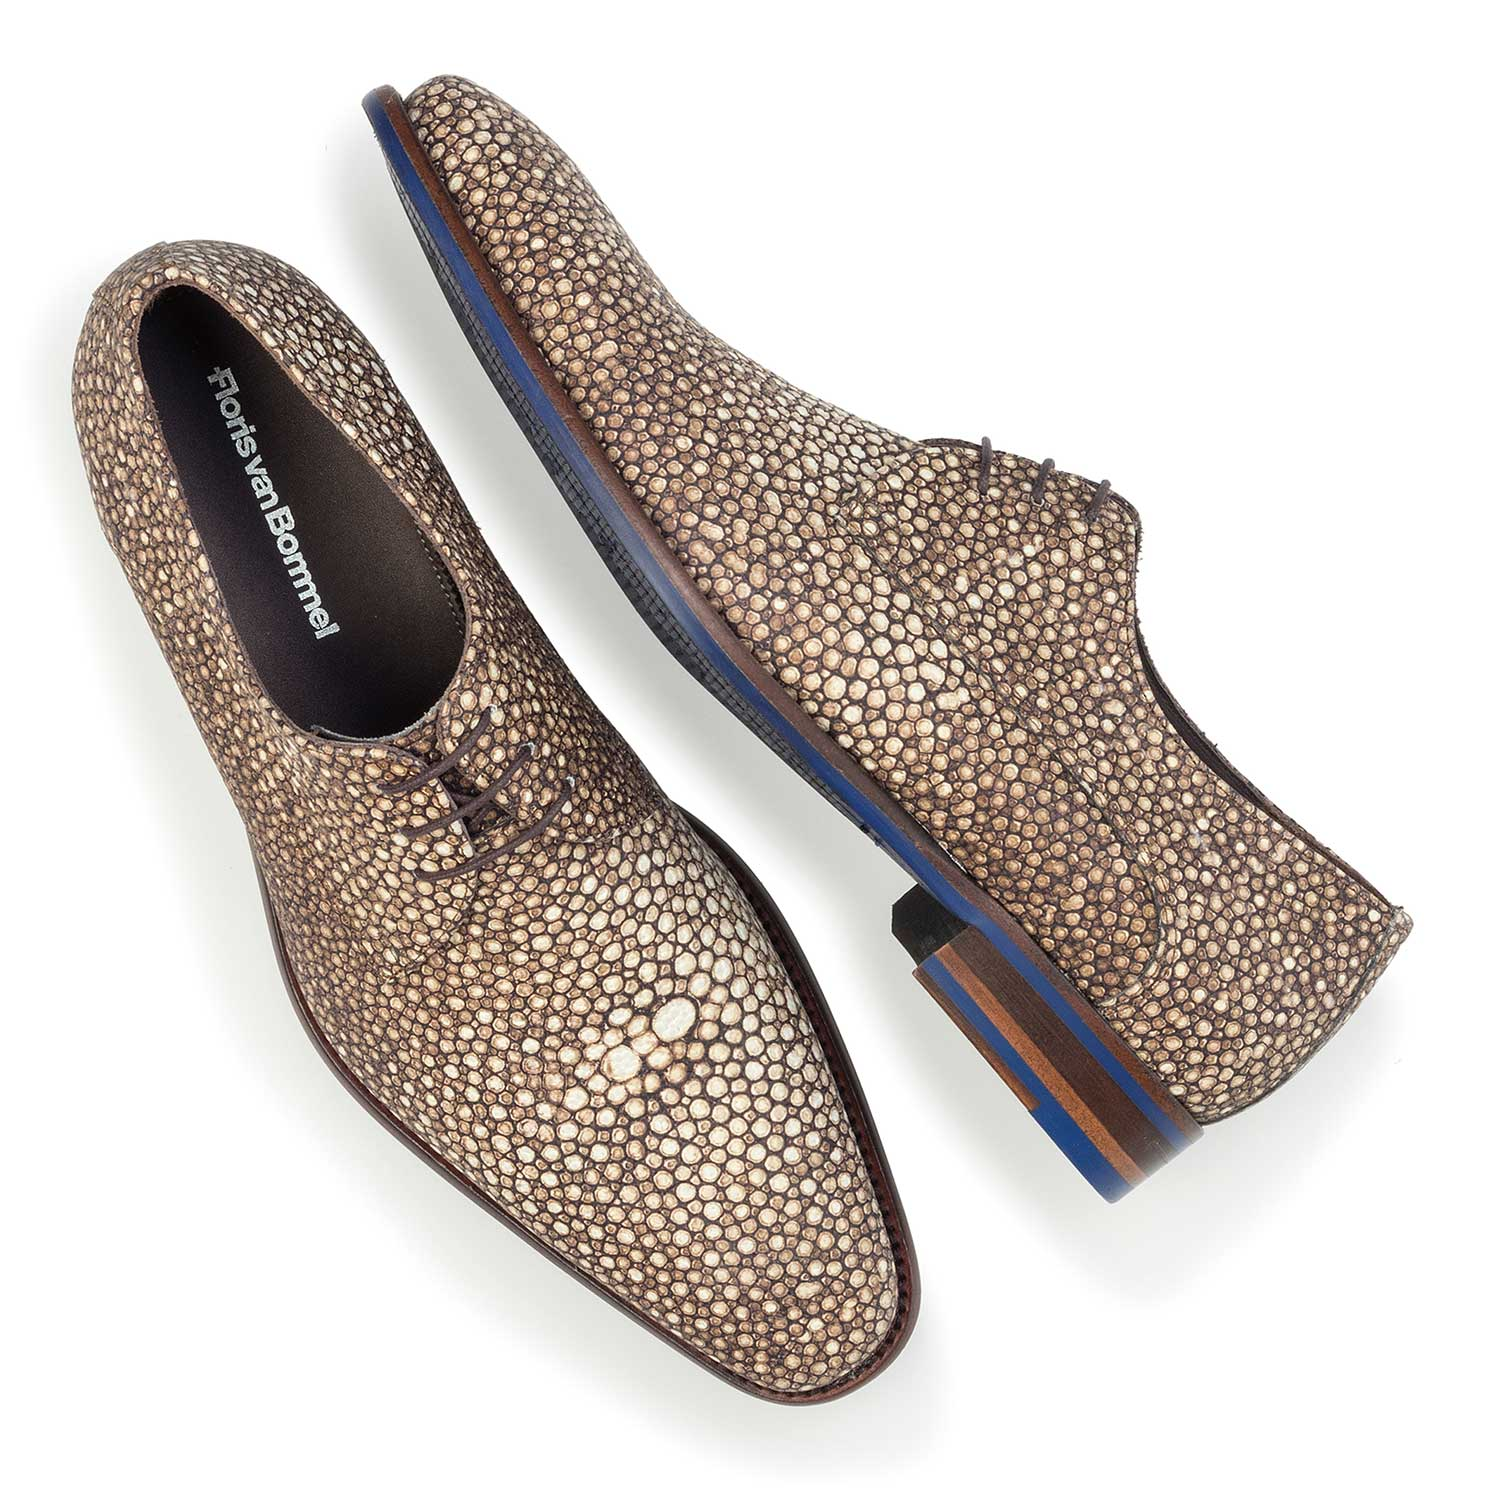 14194/02 - Brown, leather lace shoe with pattern